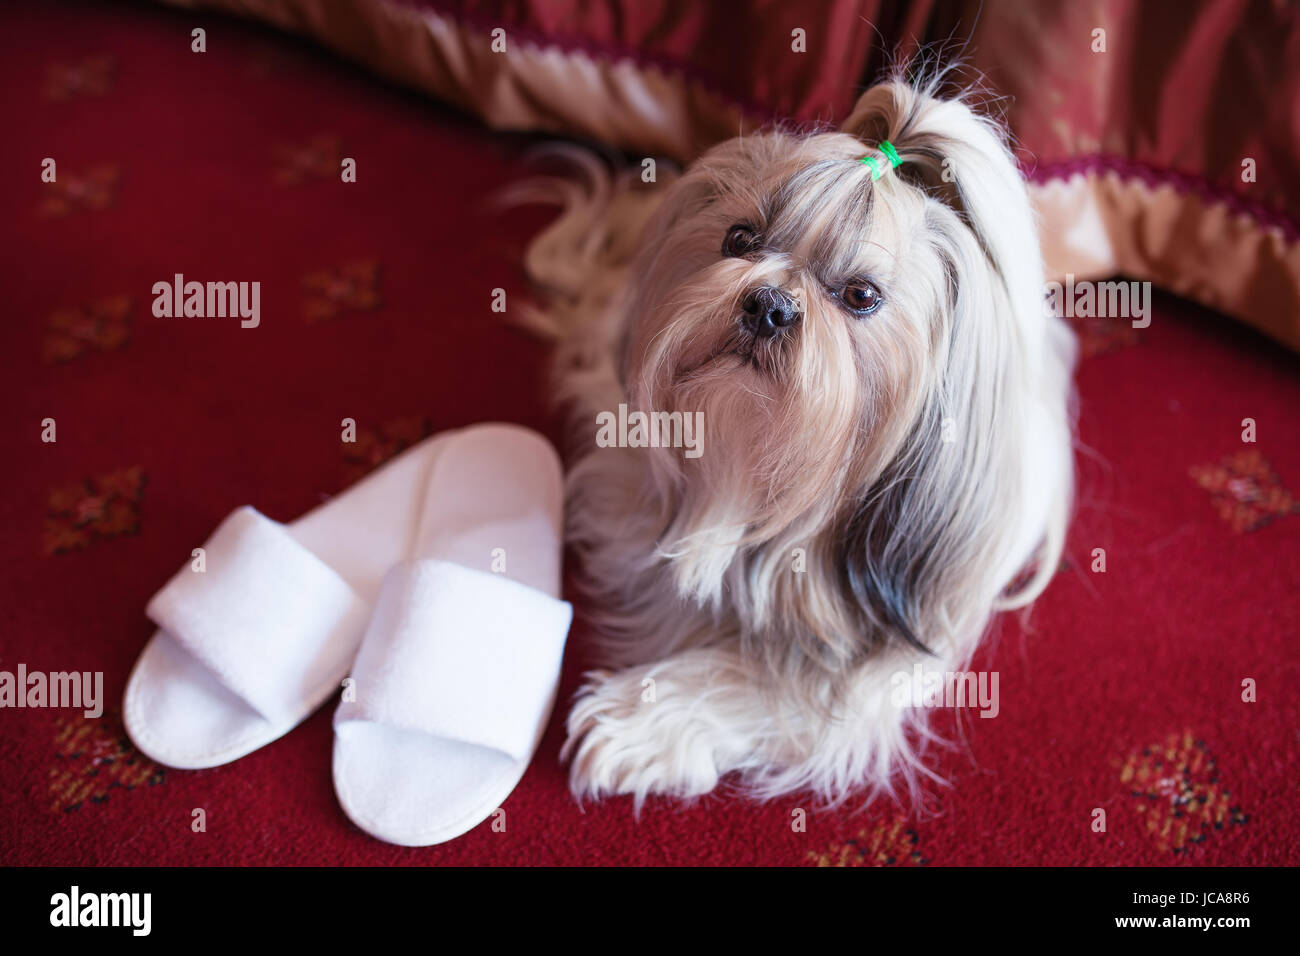 Shih tzu dog lying on red carpet with owner slippers in luxury interior - Stock Image